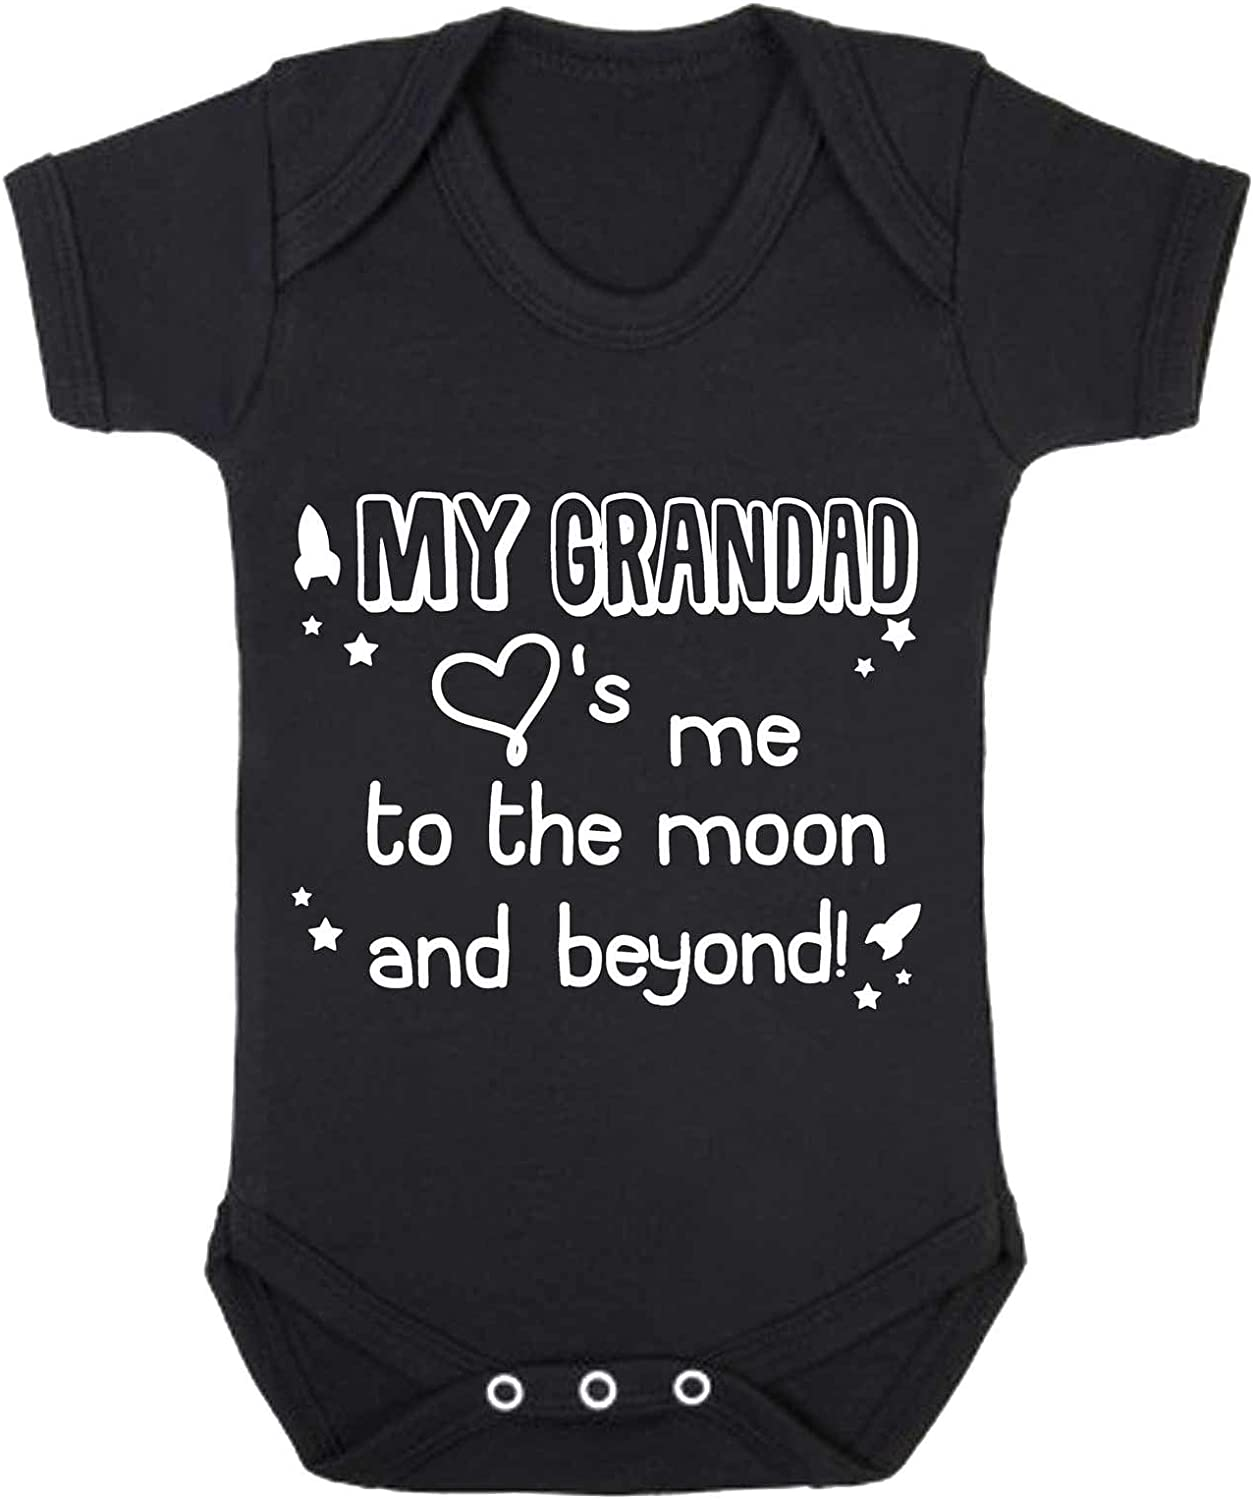 0-3 Months, Black My Grandad Loves Me to The Moon and Beyond Babygrow